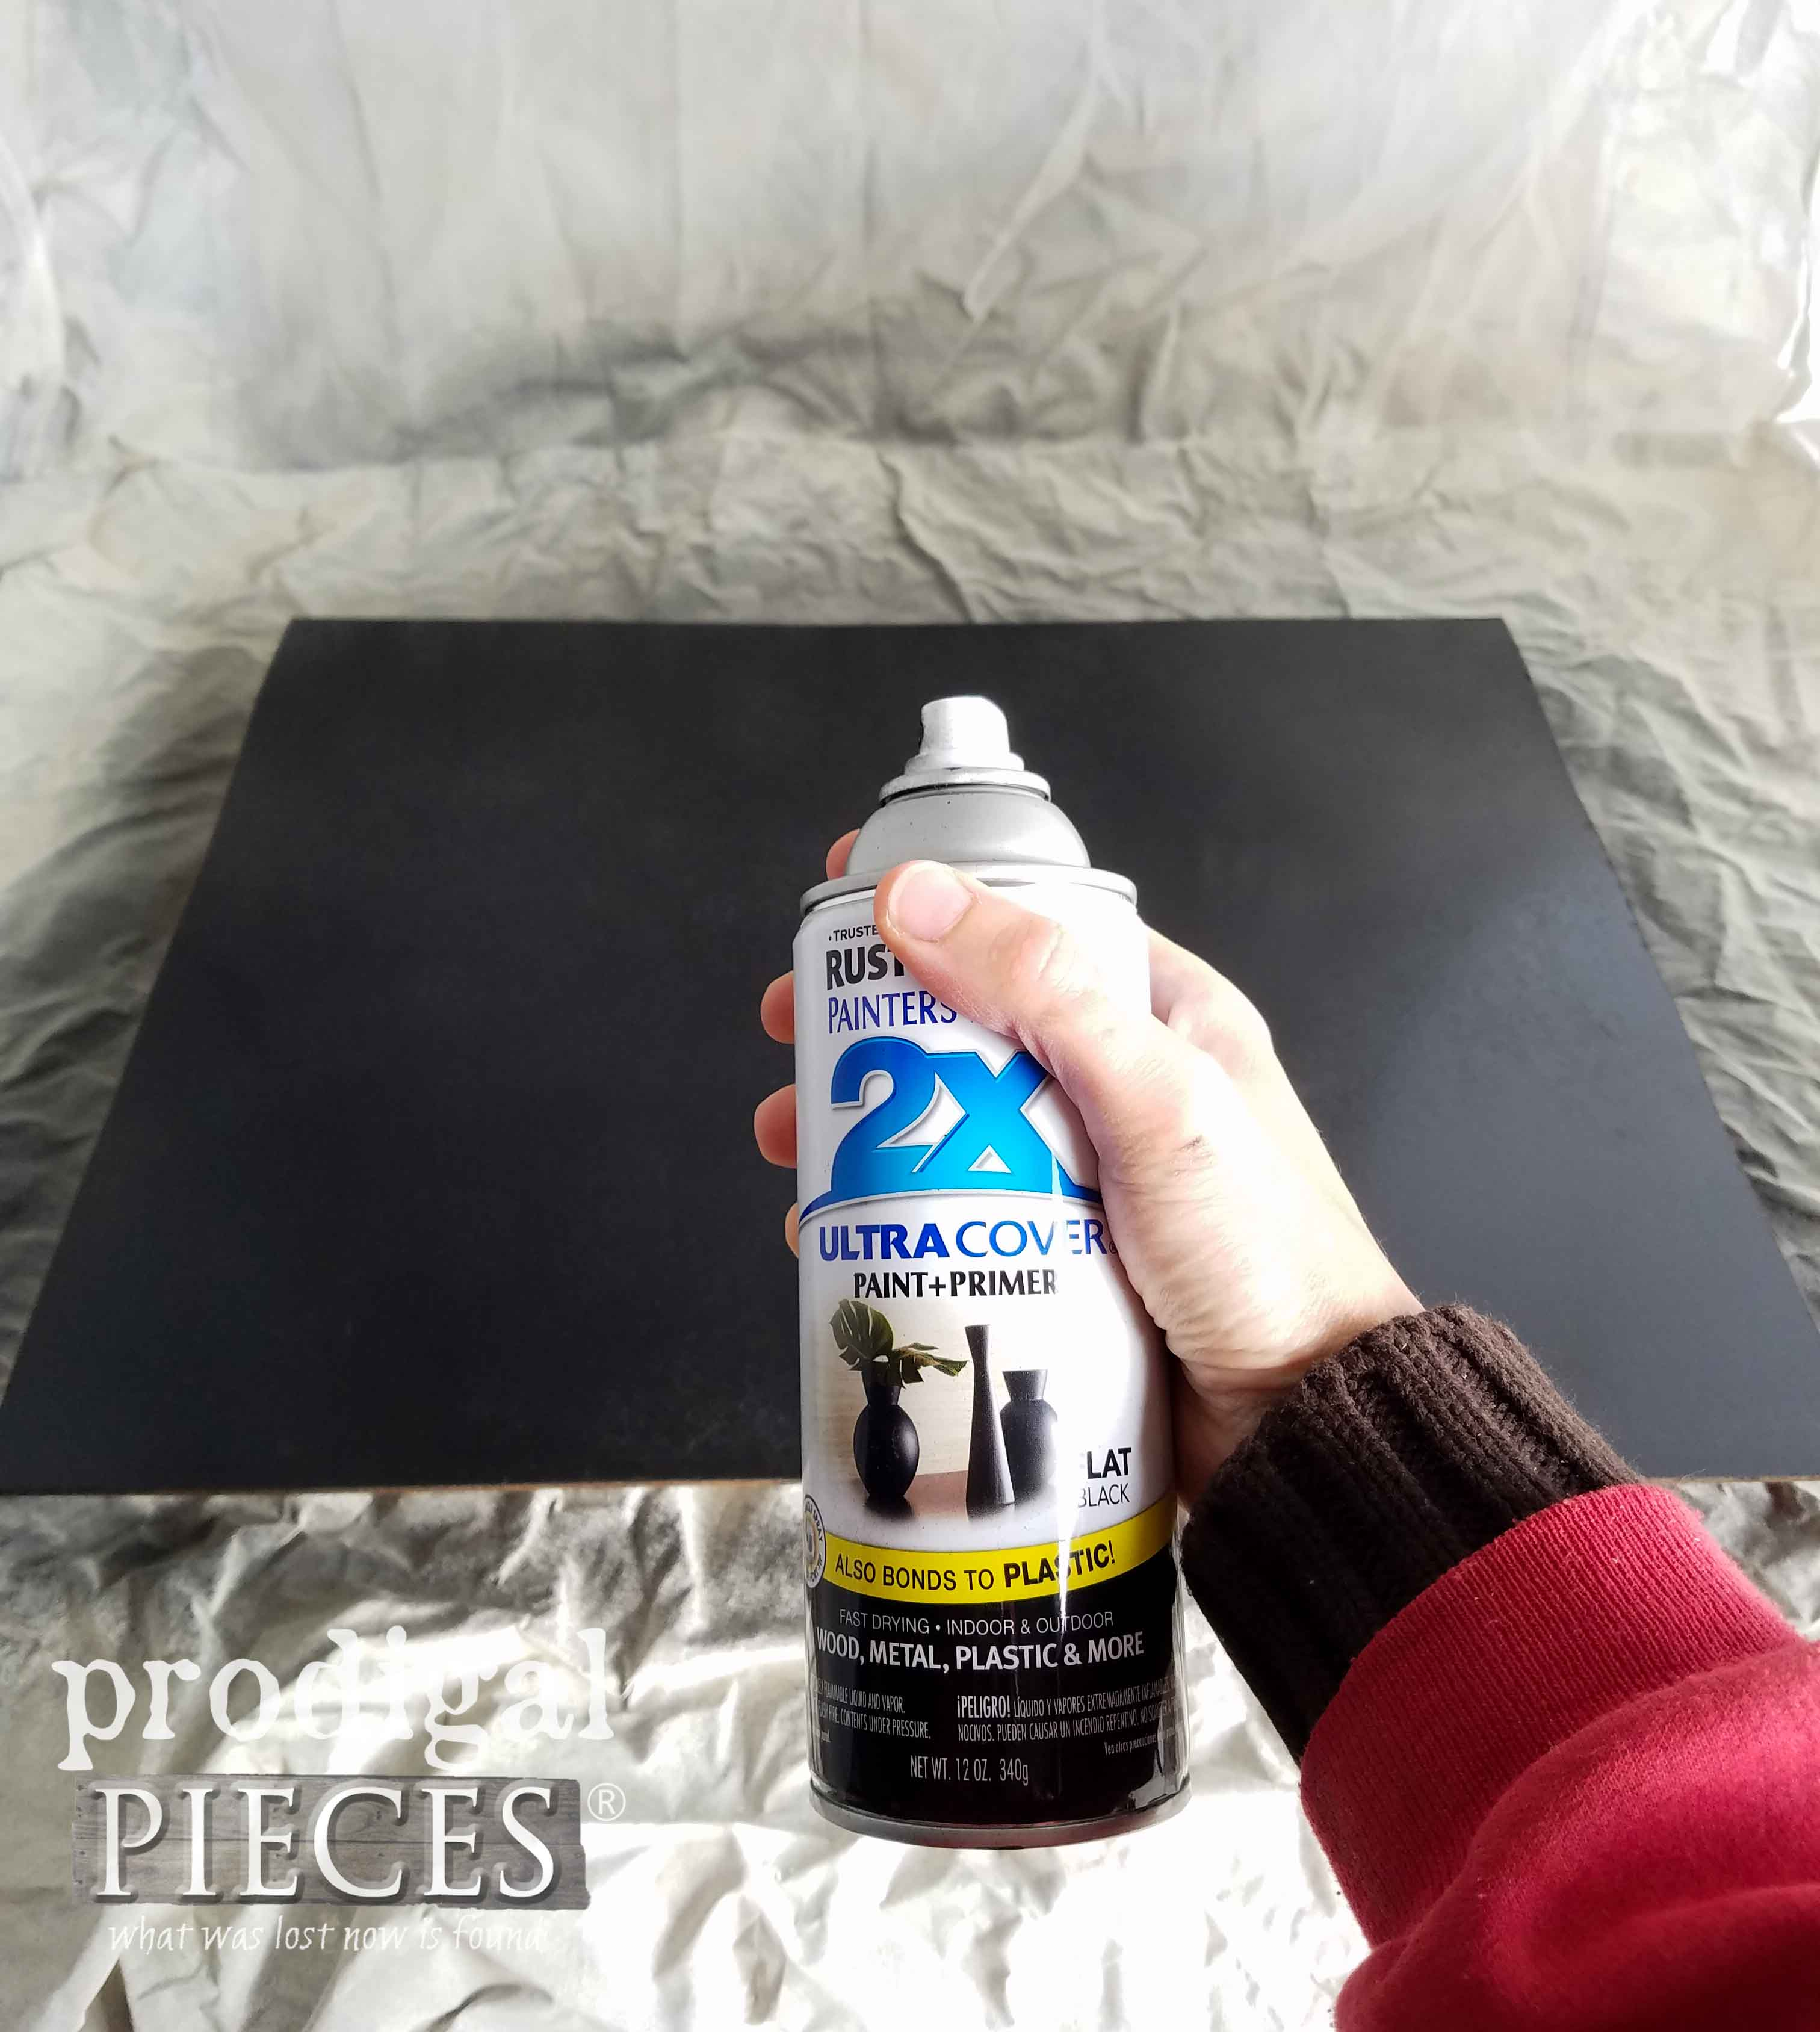 Spray Painting a DIY Chalkboard for Last-Minute Decor by Prodigal Pieces | prodigalpieces.com